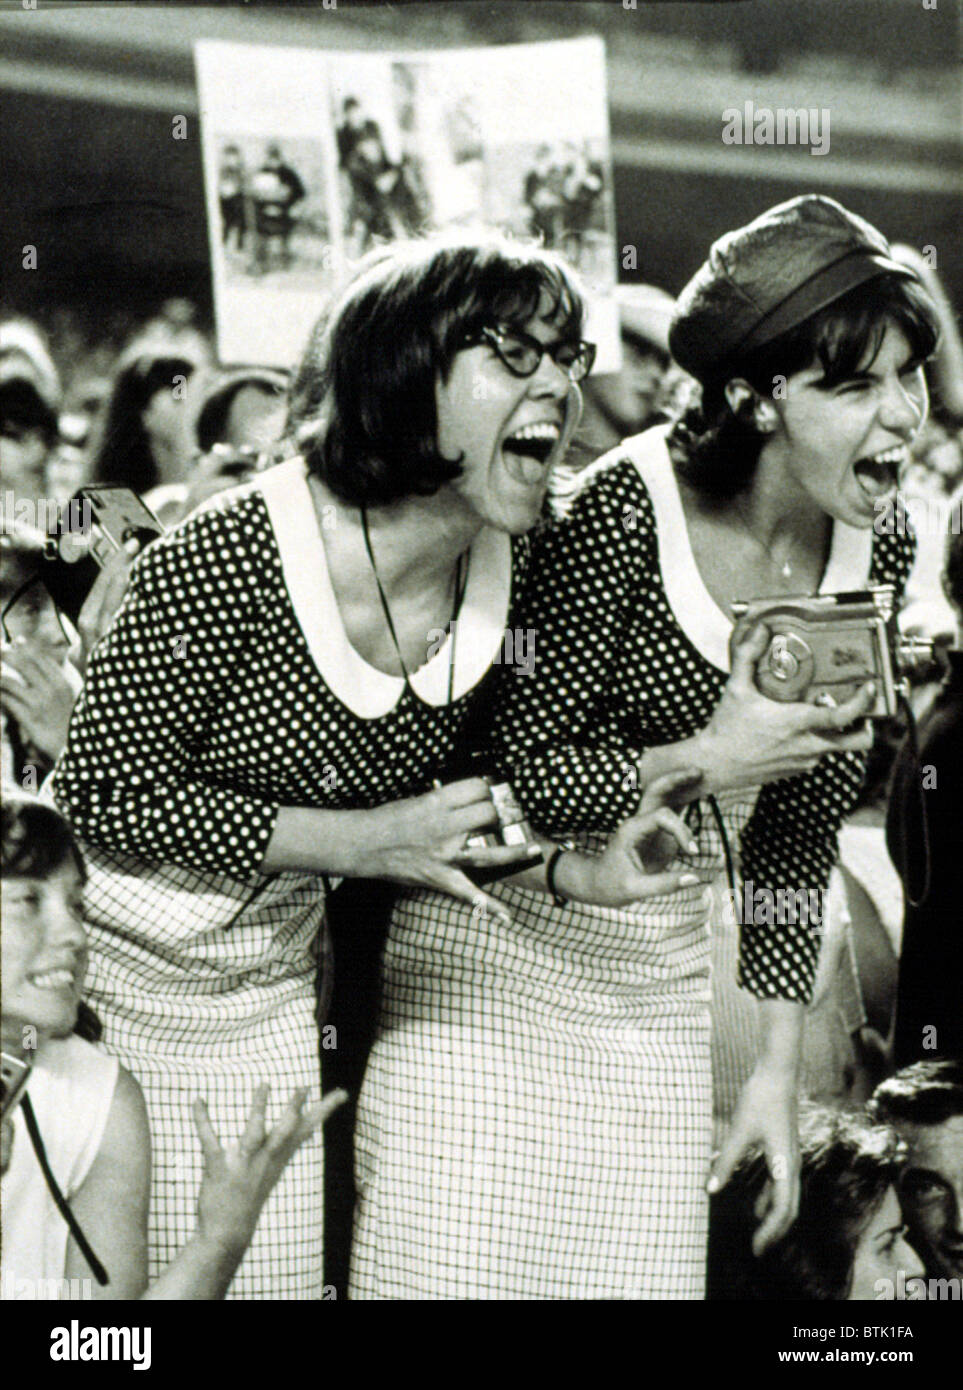 "BEATLES FANS scream at a concert at Shea Stadium, NY, 8/15/65, displaying what is called, ""Beatlemania."" Stock Photo"